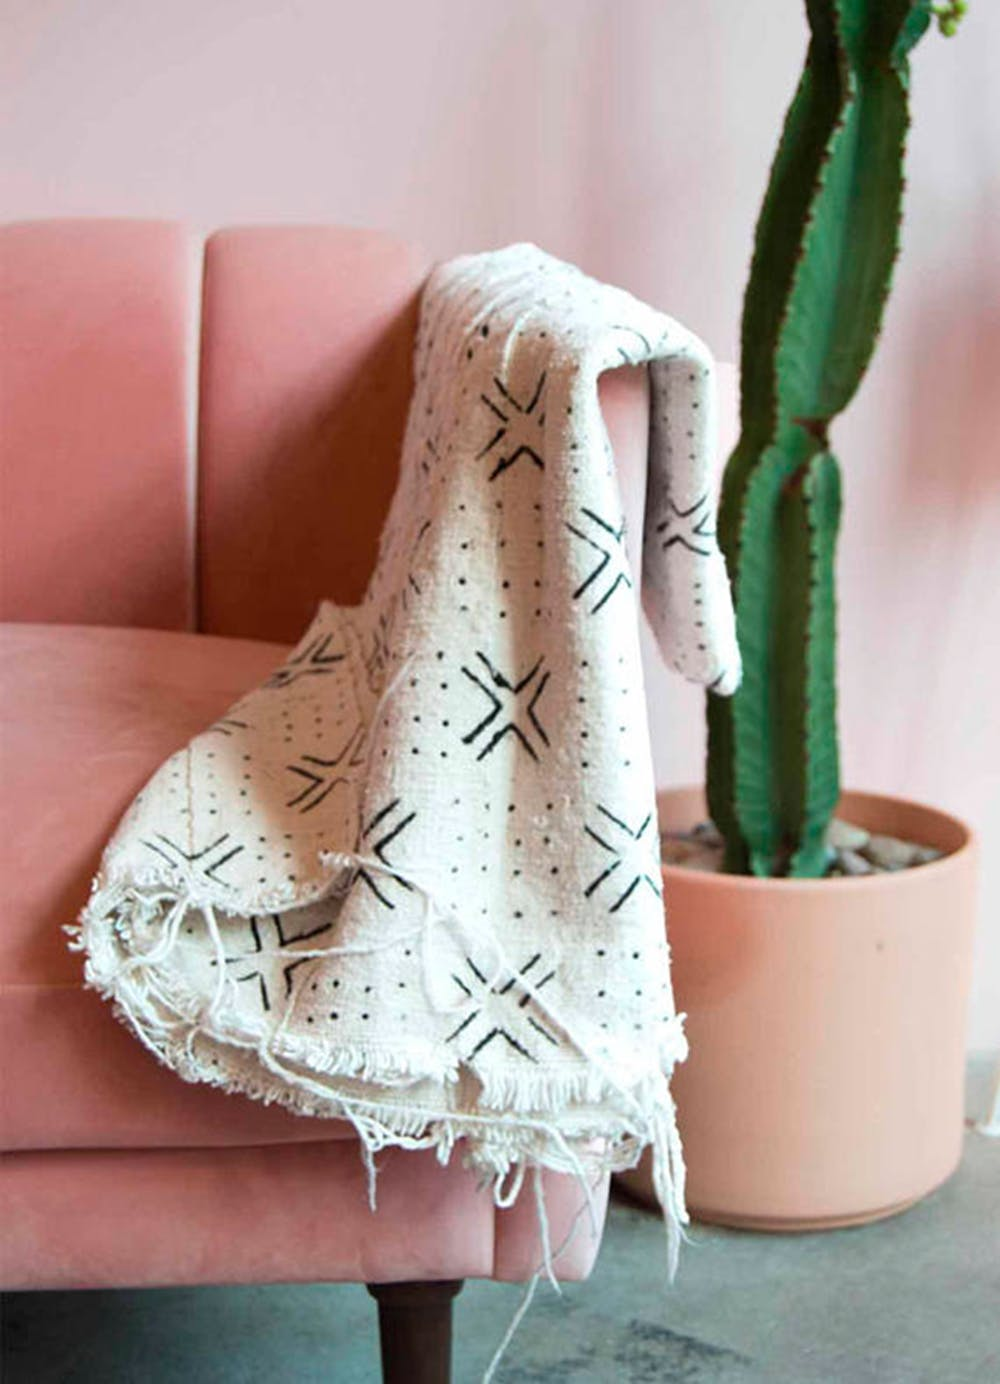 Hygge style seating area soft pink seat mudcloth throw blanket in white accented with crosses & dots